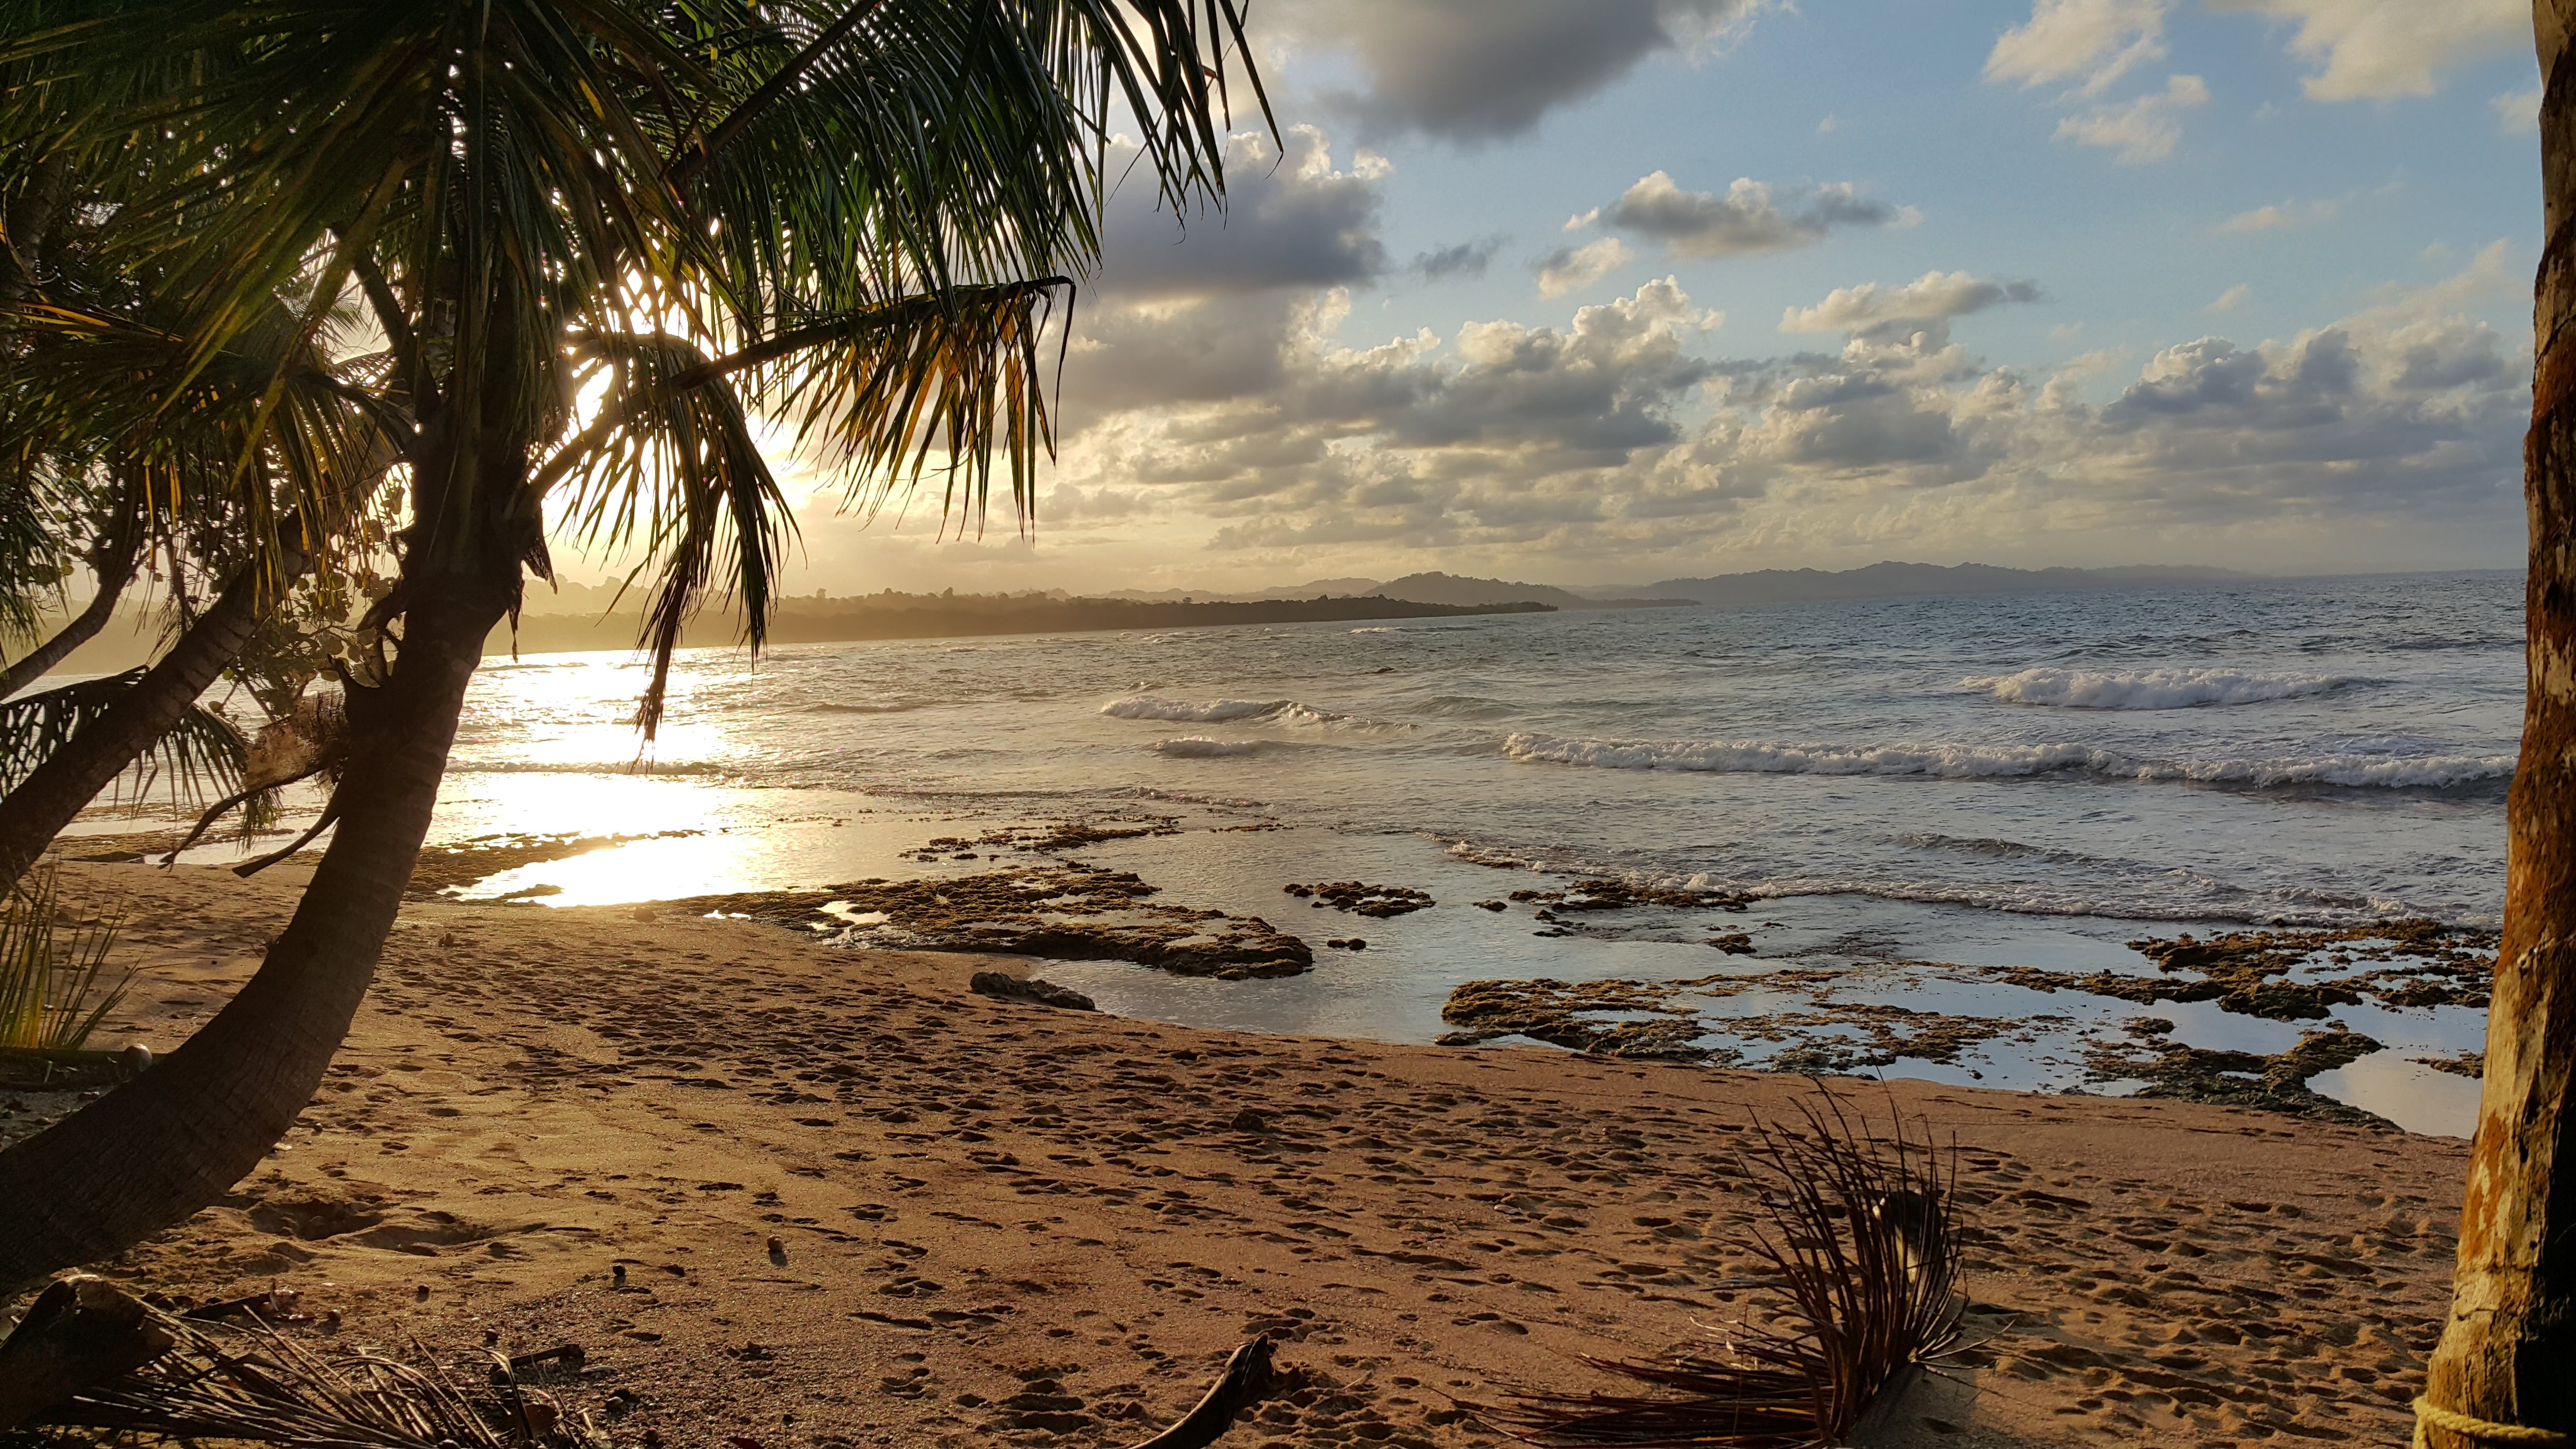 Landscape Photo of Beach Under Partly Cloudy Skies